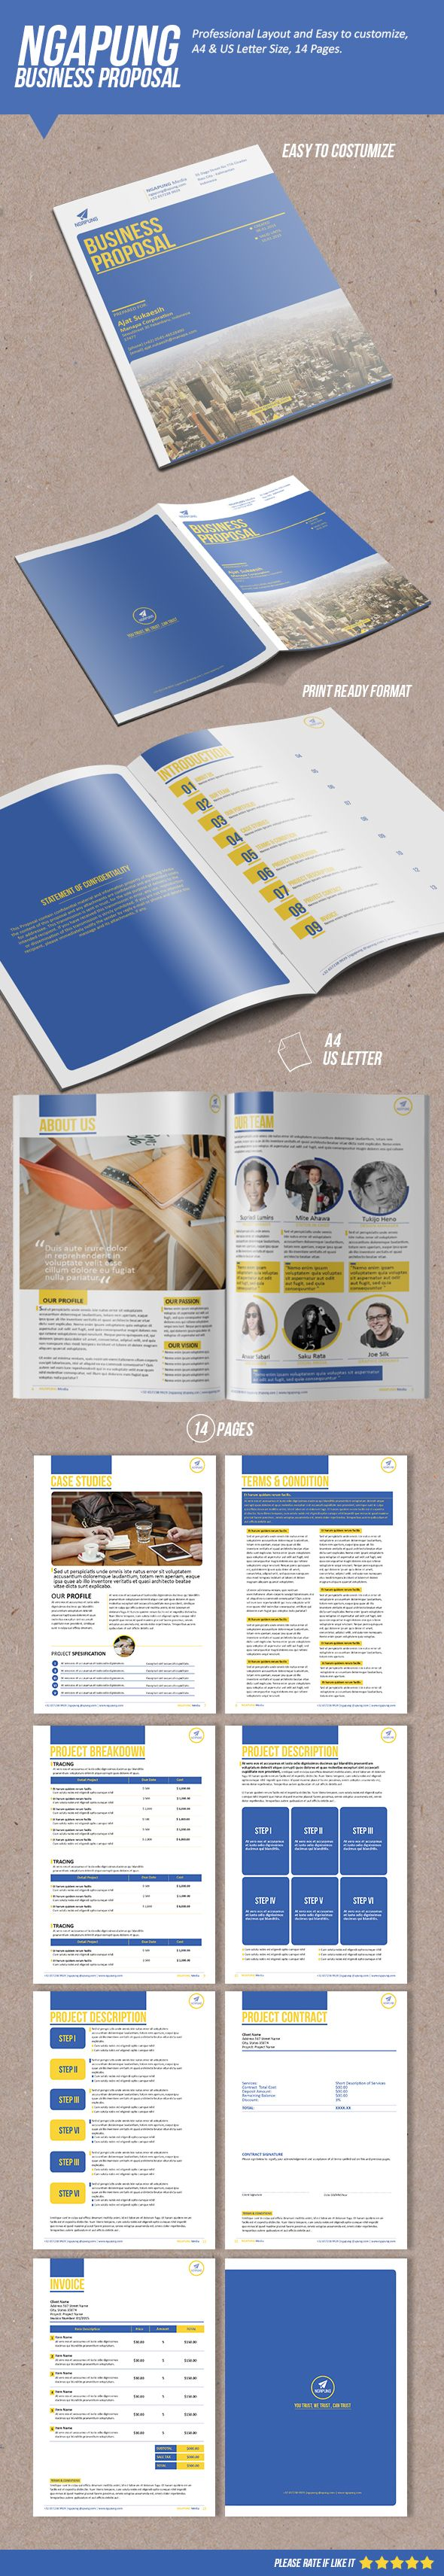 Ngapung Business Proposal on Behance